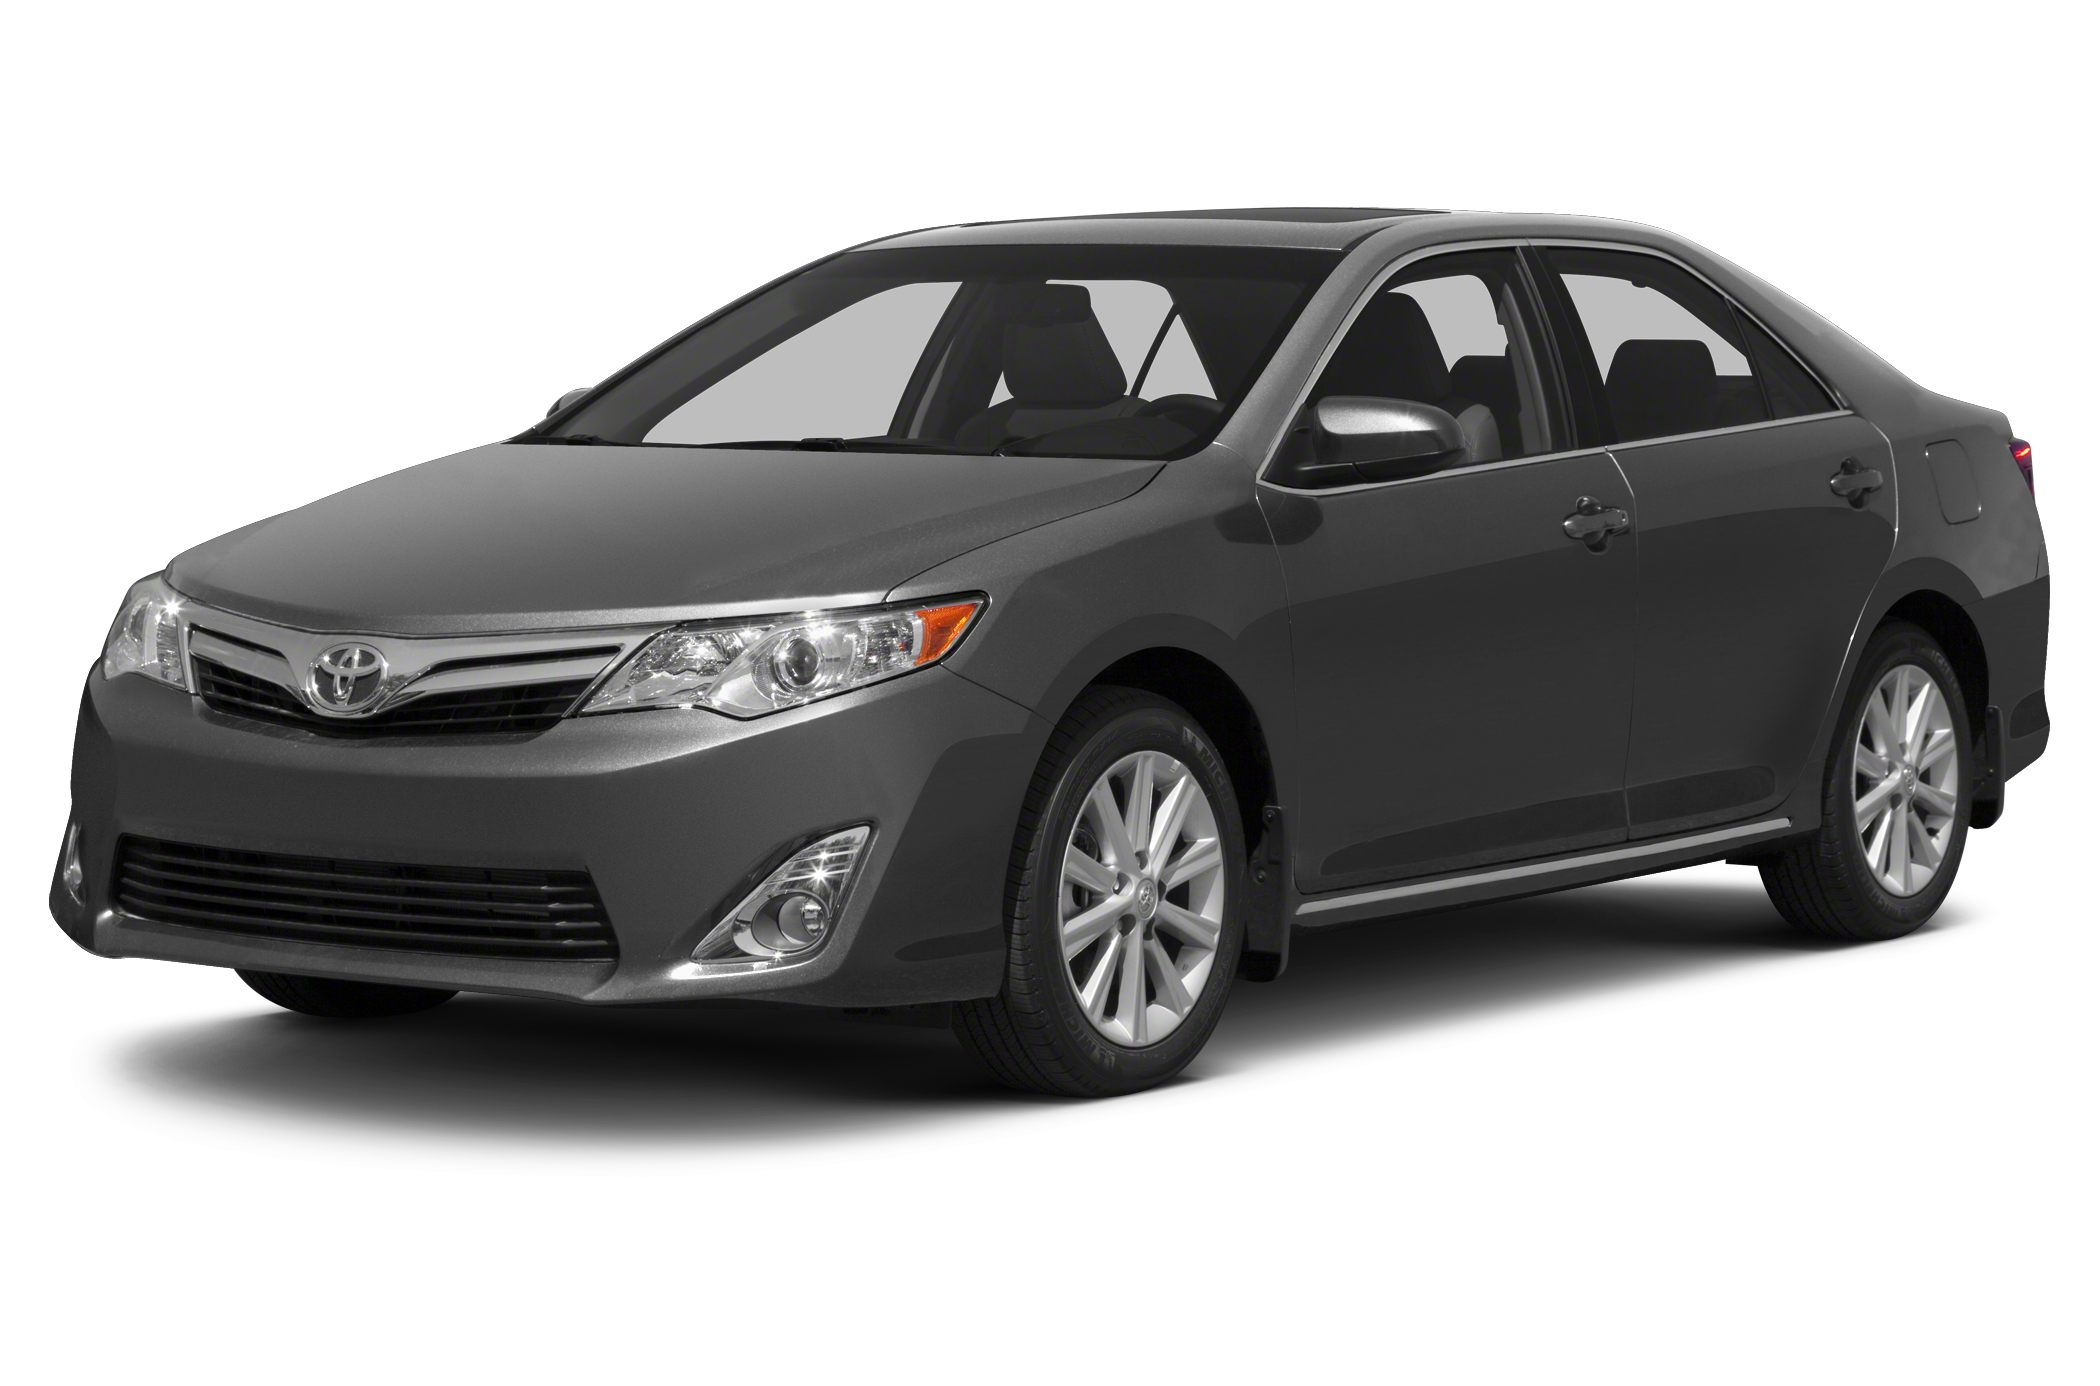 2012 Toyota Camry LE Sedan for sale in Cheyenne for $17,992 with 27,667 miles